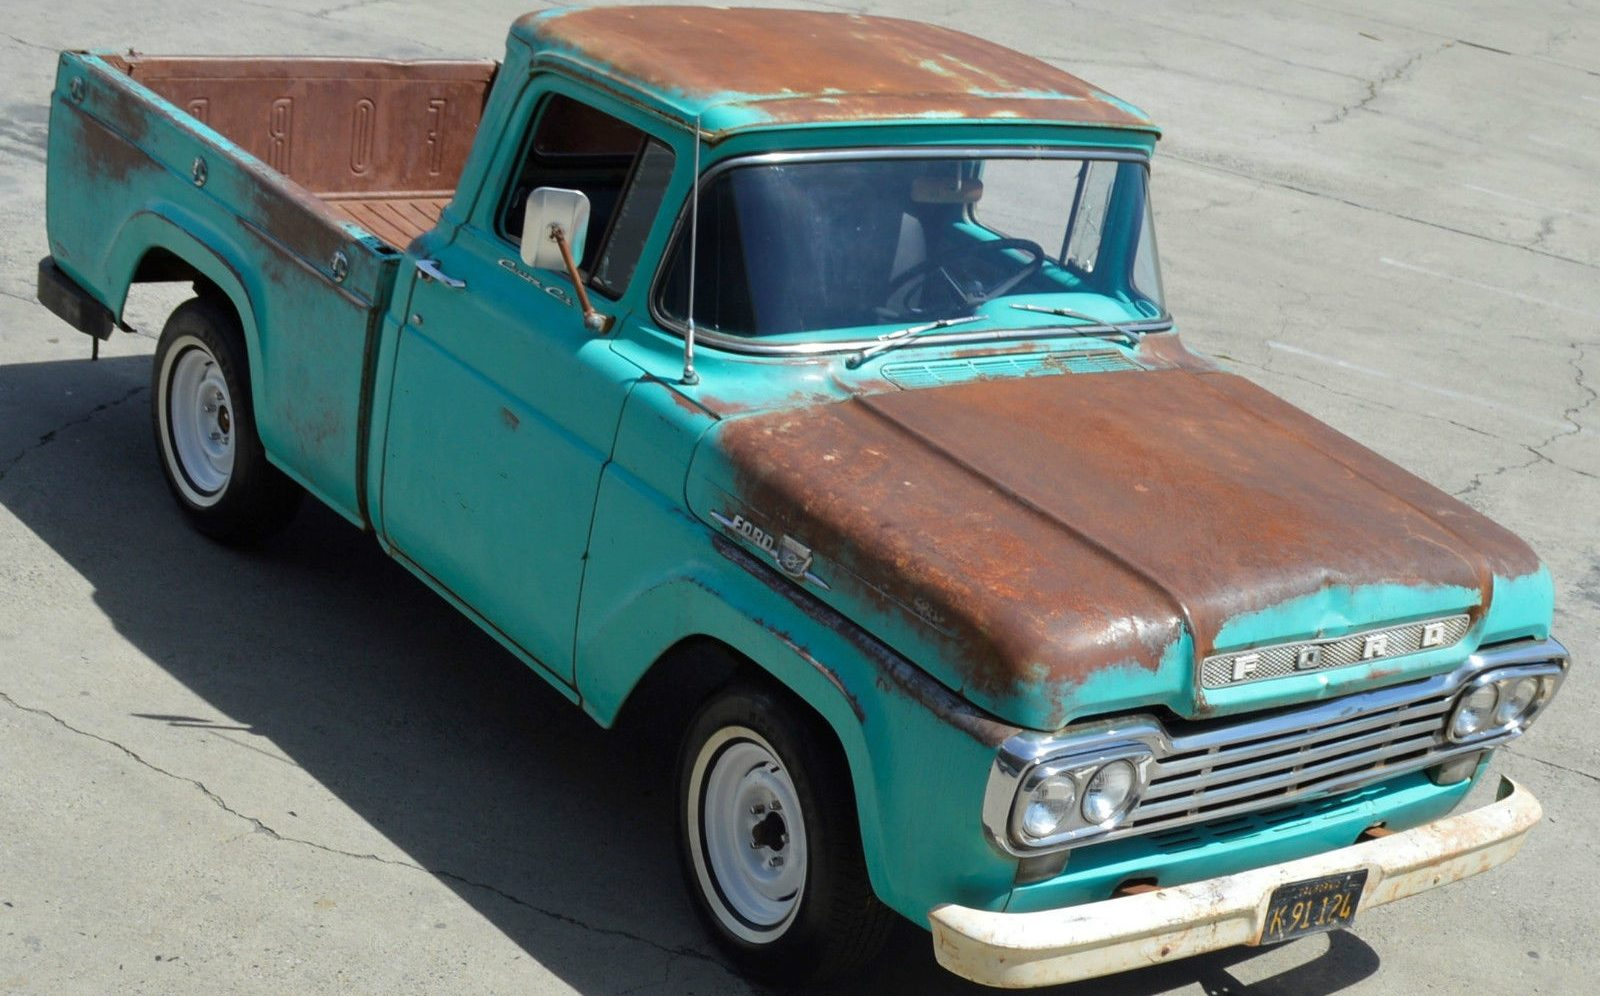 Good Old Truck: 1959 Ford F-100 Short Bed